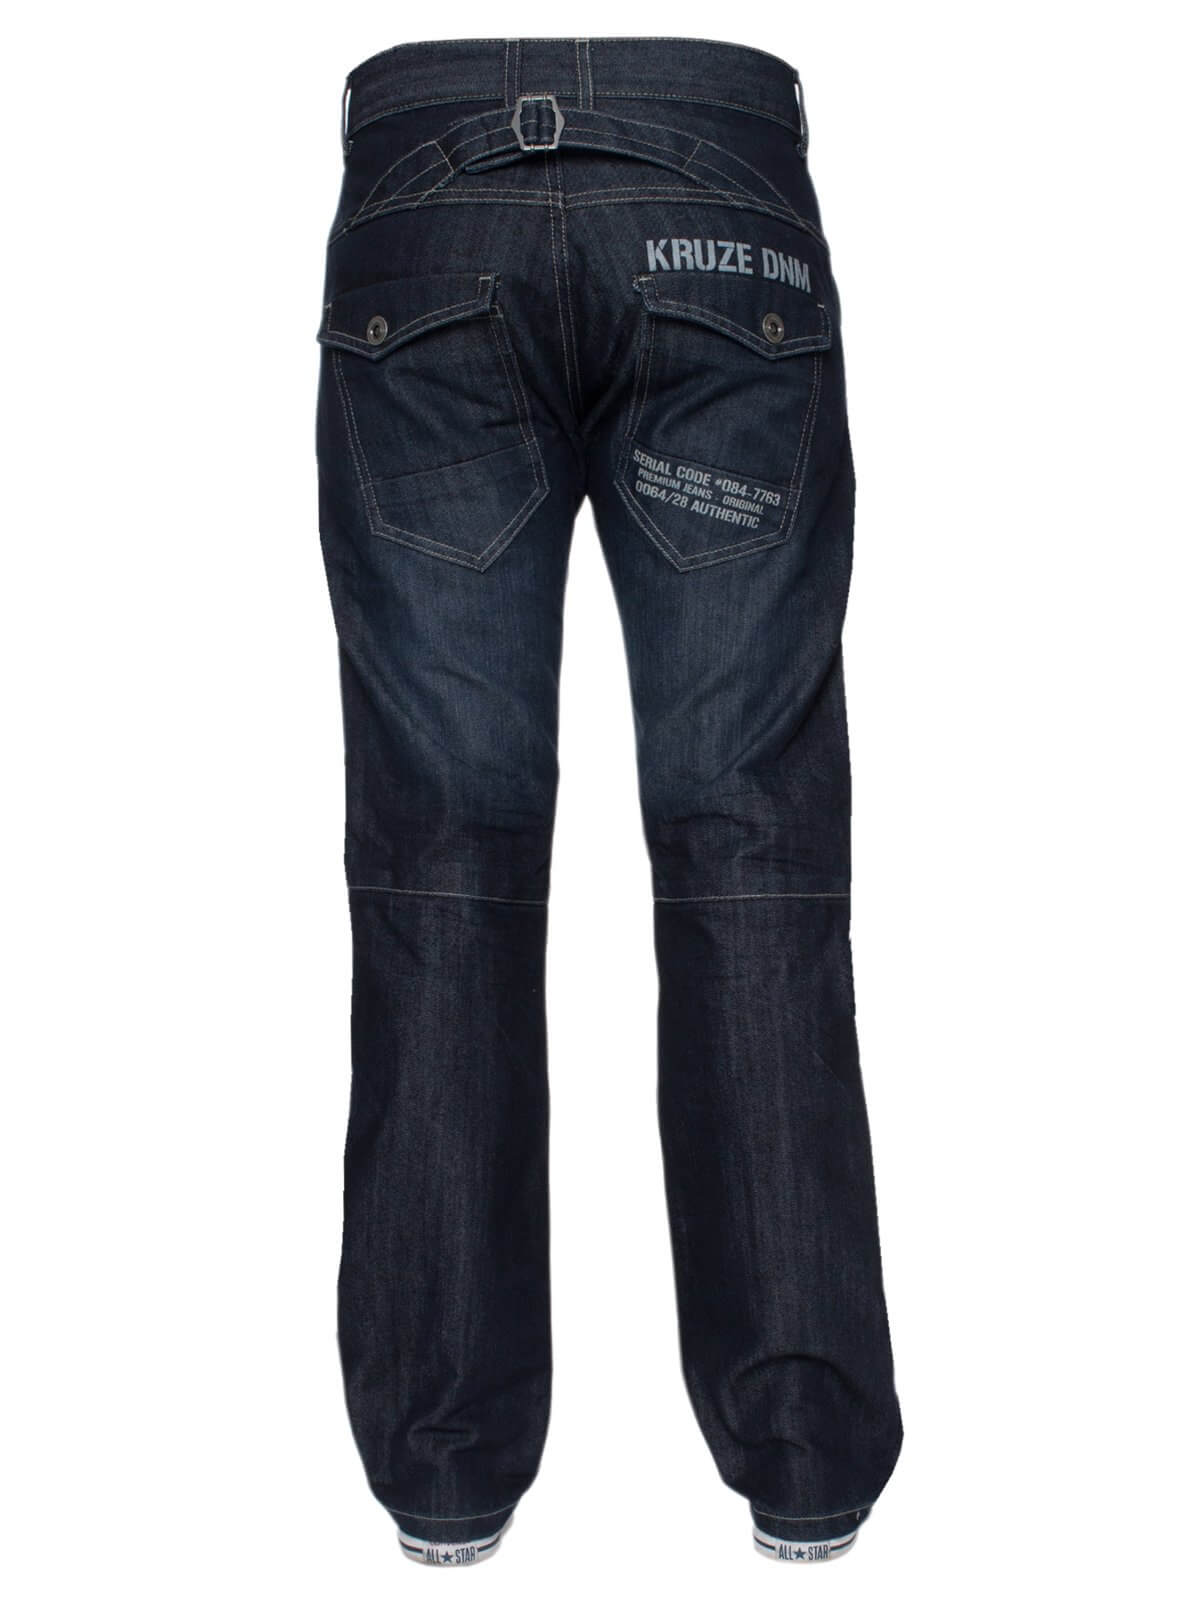 Kruze | Mens Regular Fit Branded Designer Denim Jeans